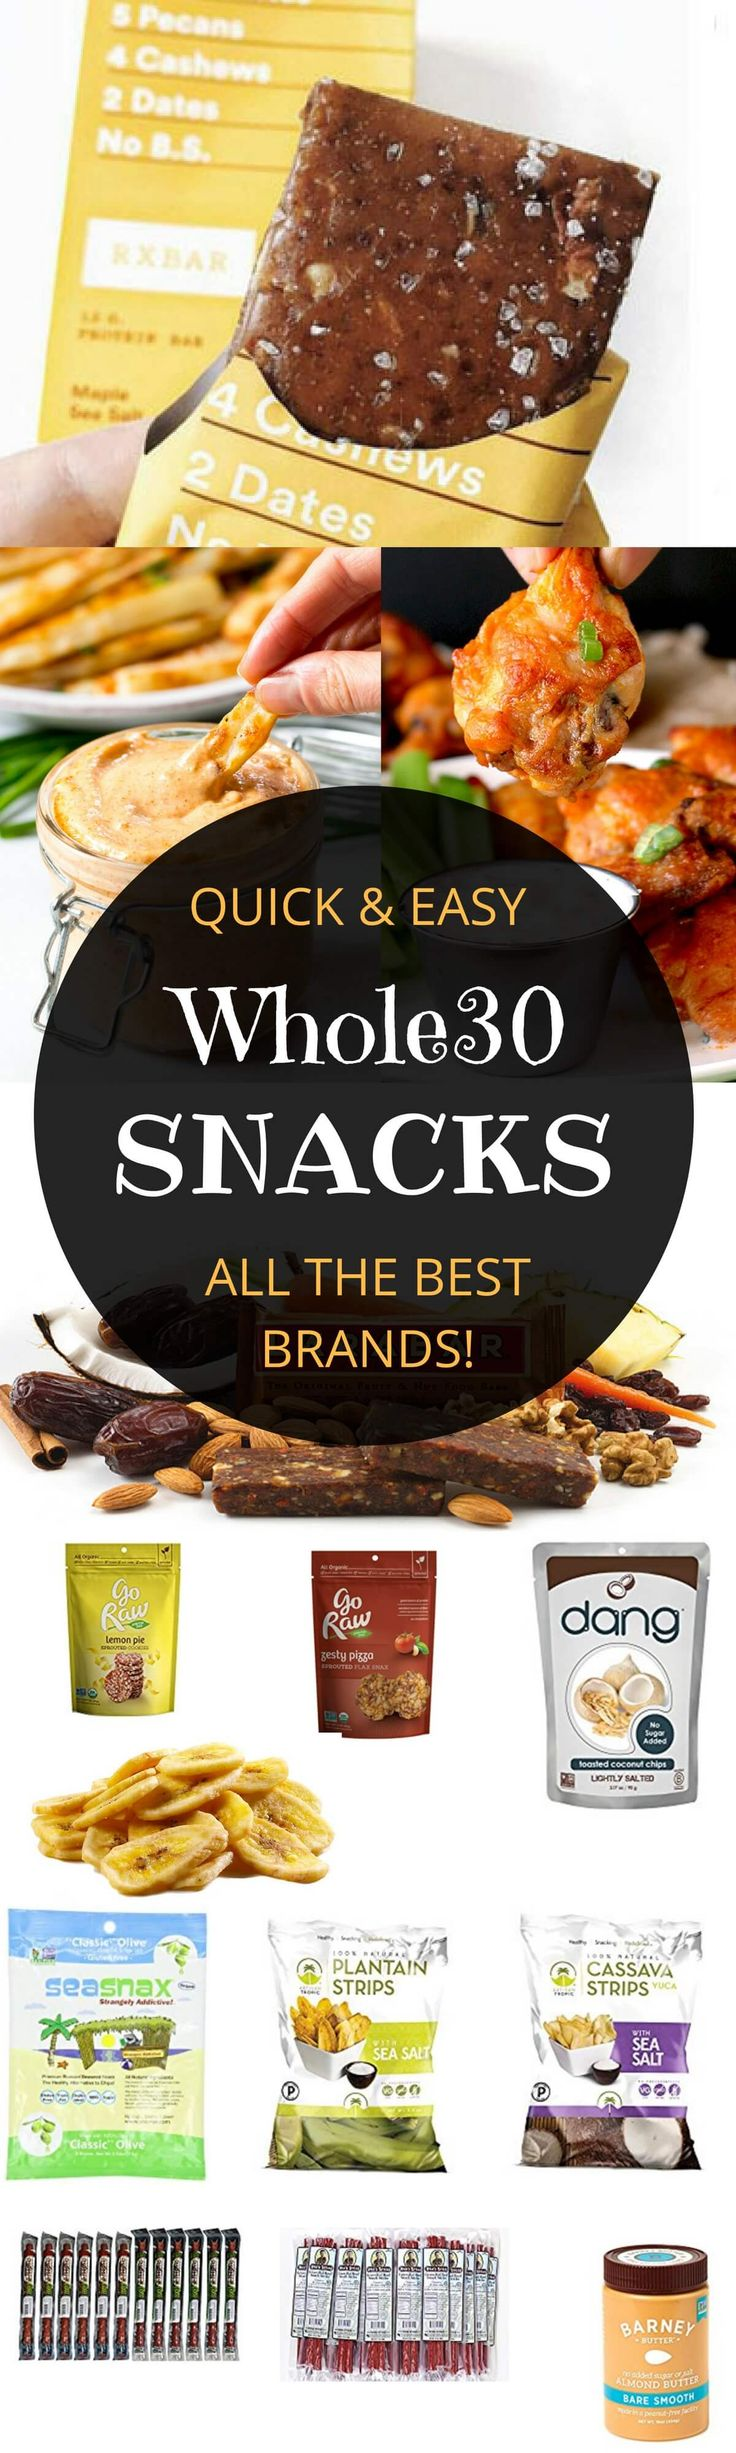 "Easy whole30 items for on the go.  Remember that ""snacking"" is not allowed on Whole30, but these items can be used in situations where you may not have fresh foods available...meant to be ""emergency"" items."